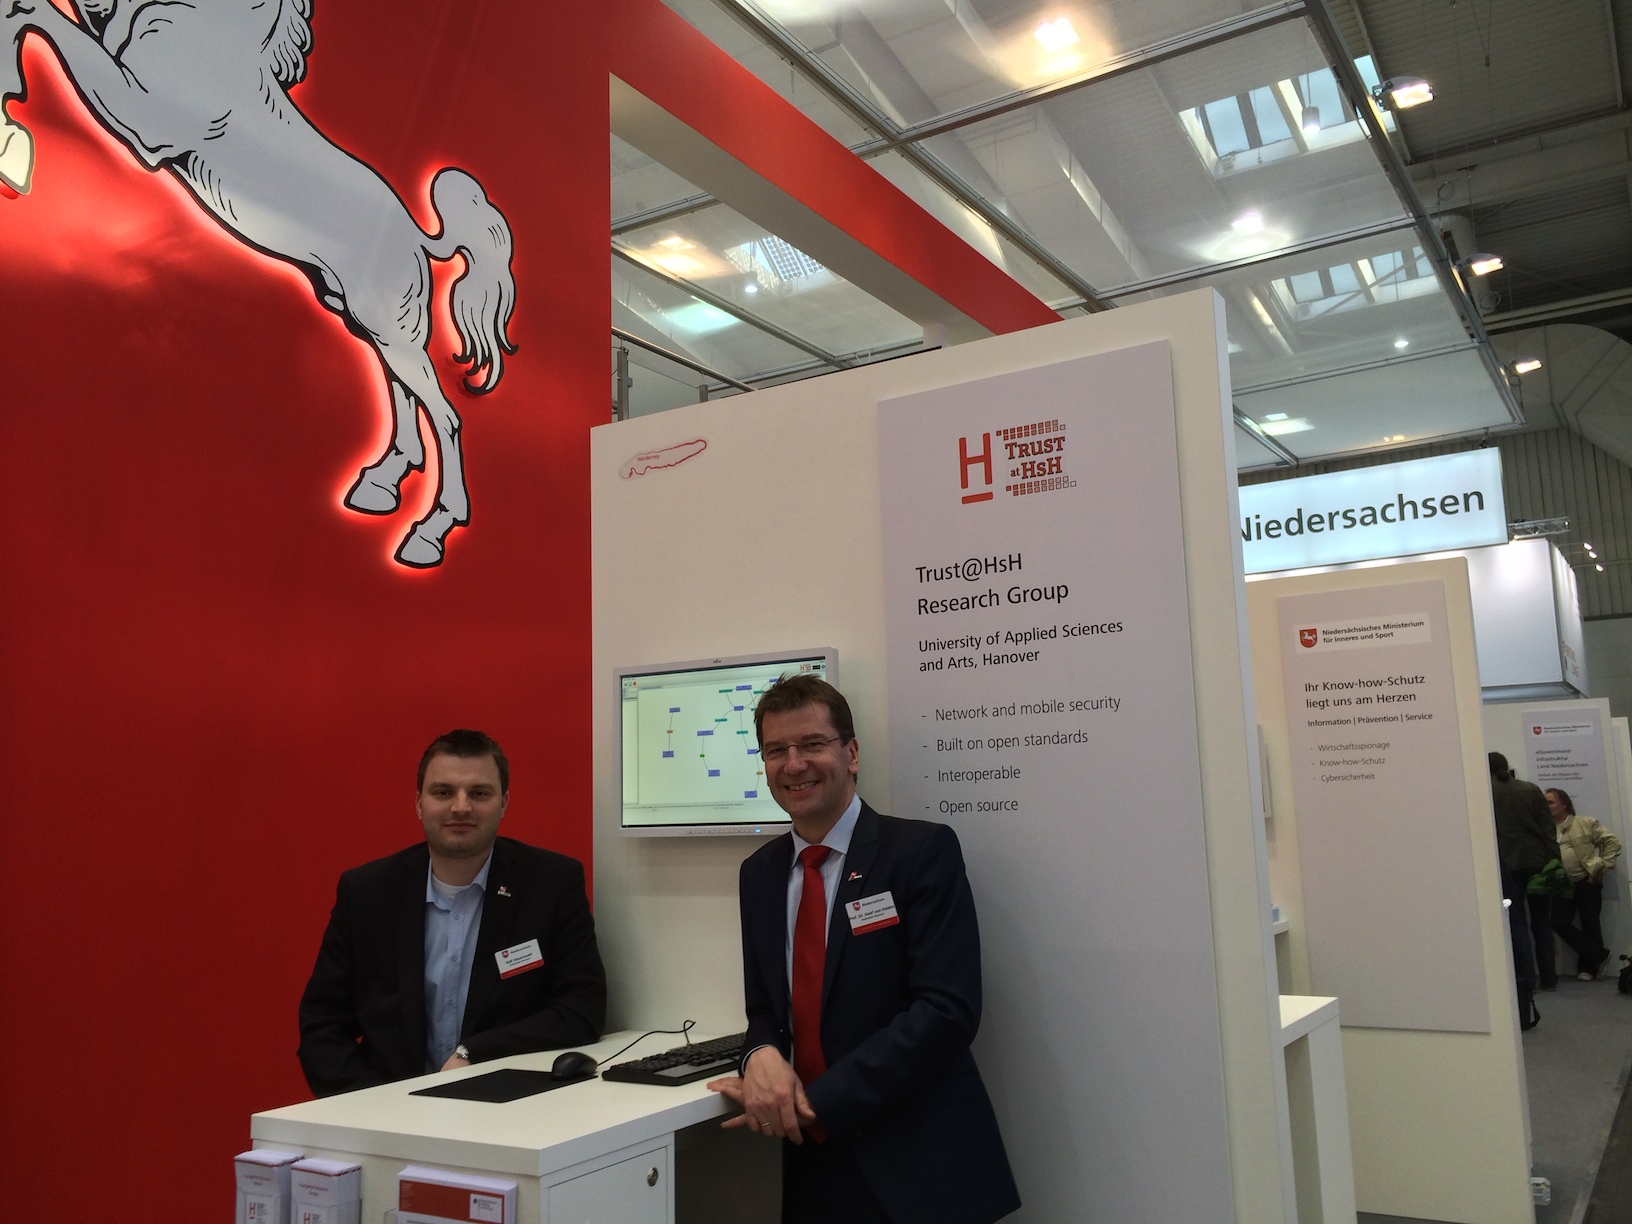 Booth of Trust@HsH at Cebit 2014